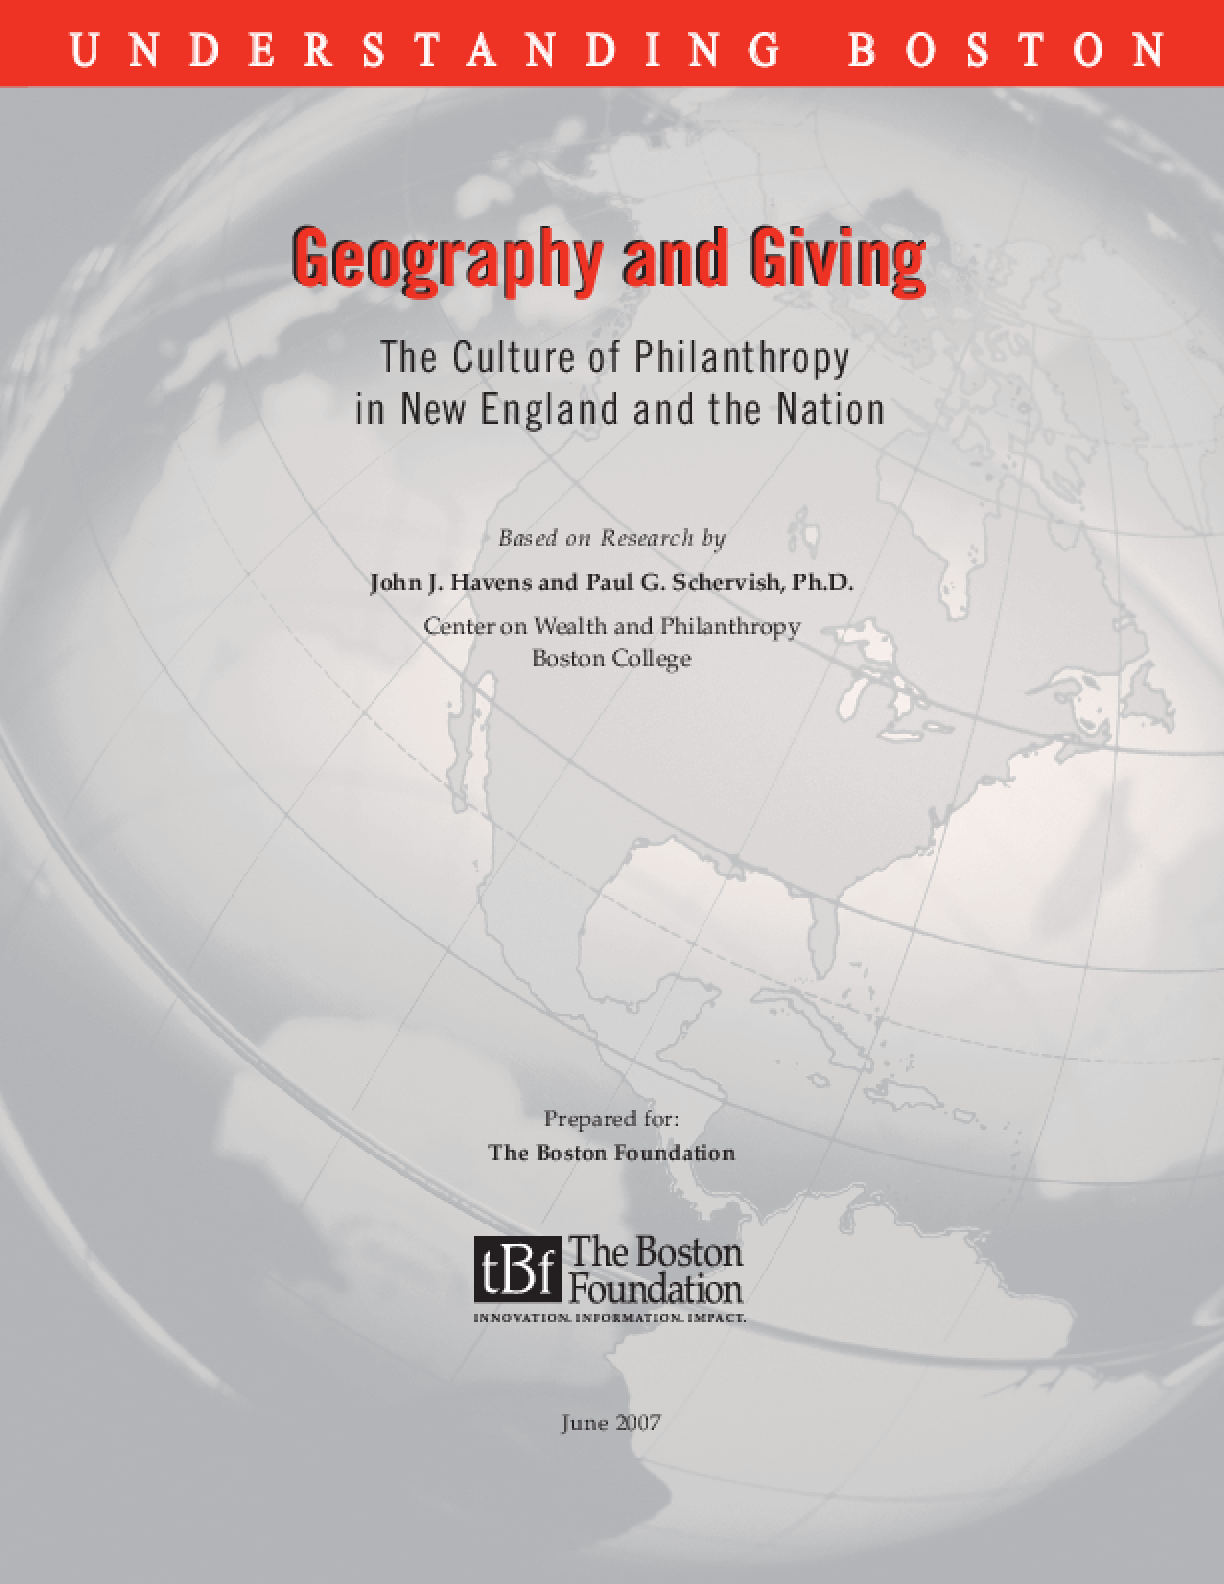 Geography and Giving: The Culture of Philanthropy in New England and the Nation